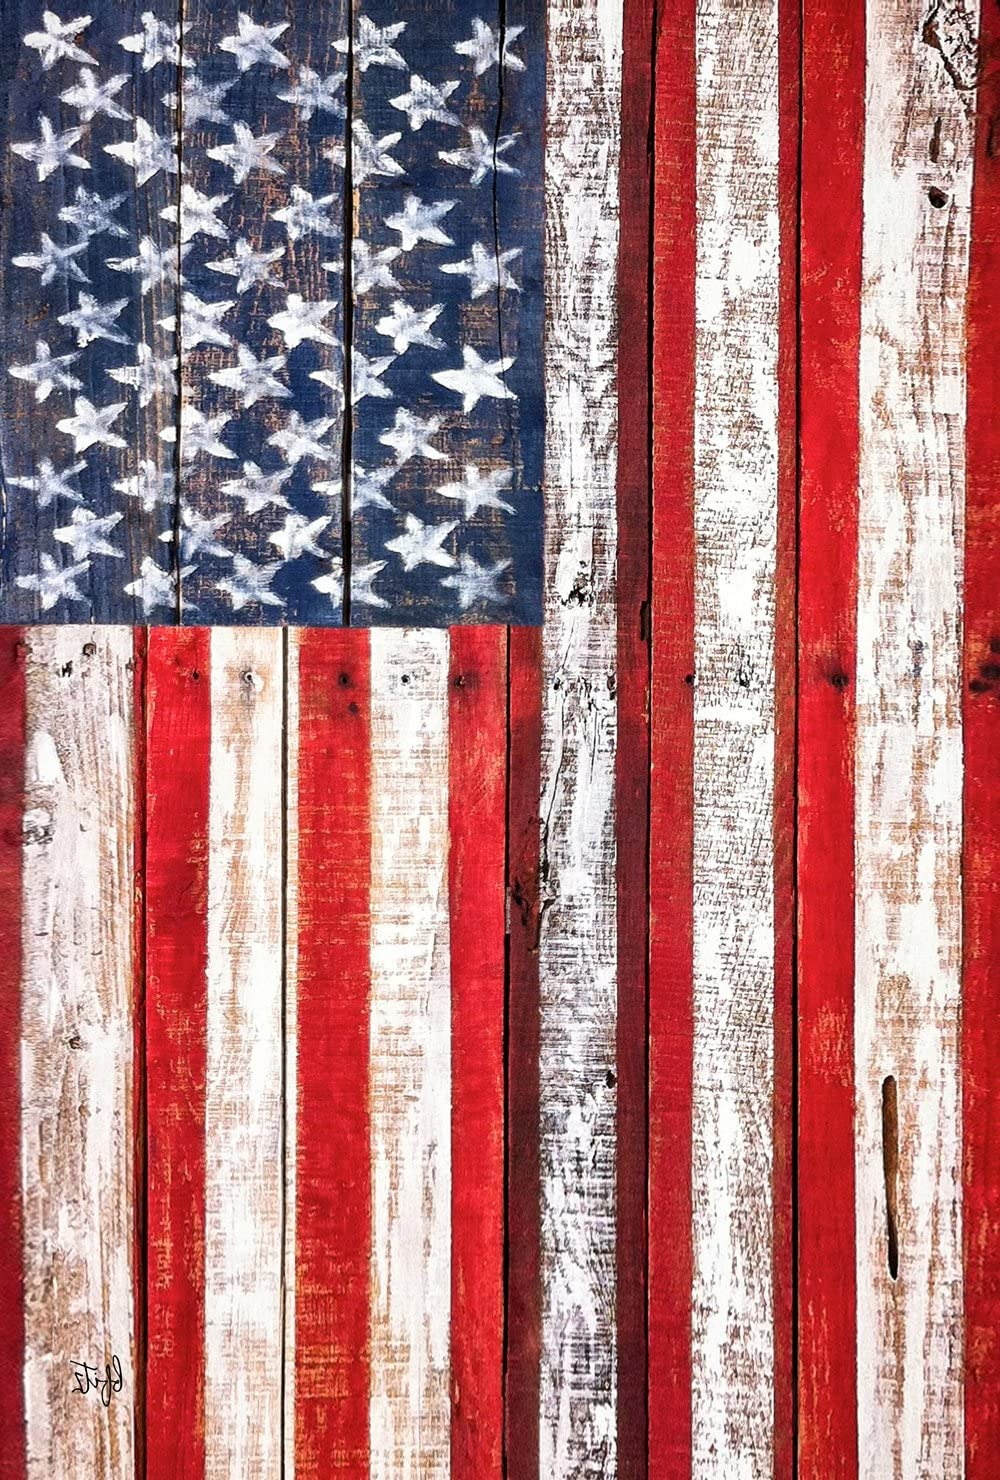 Toland Home Garden American Fence 12.5 x 18 Inch Decorative Rustic Patriotic USA Stars Stripes Garden Flag